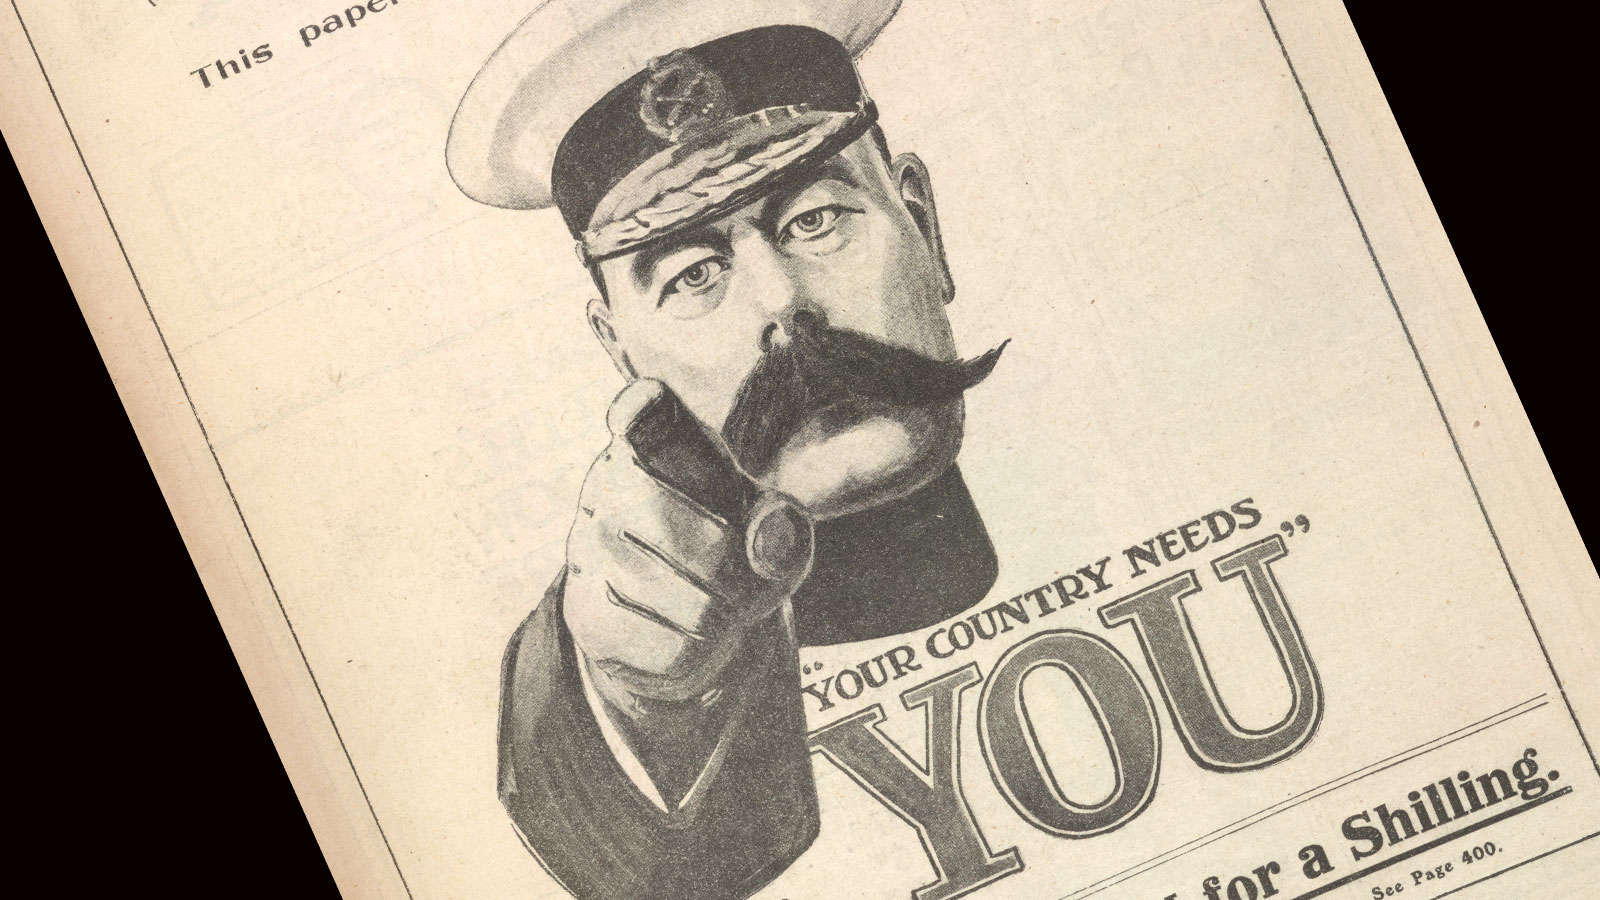 Lord Kitchener's army, your country needs you poster